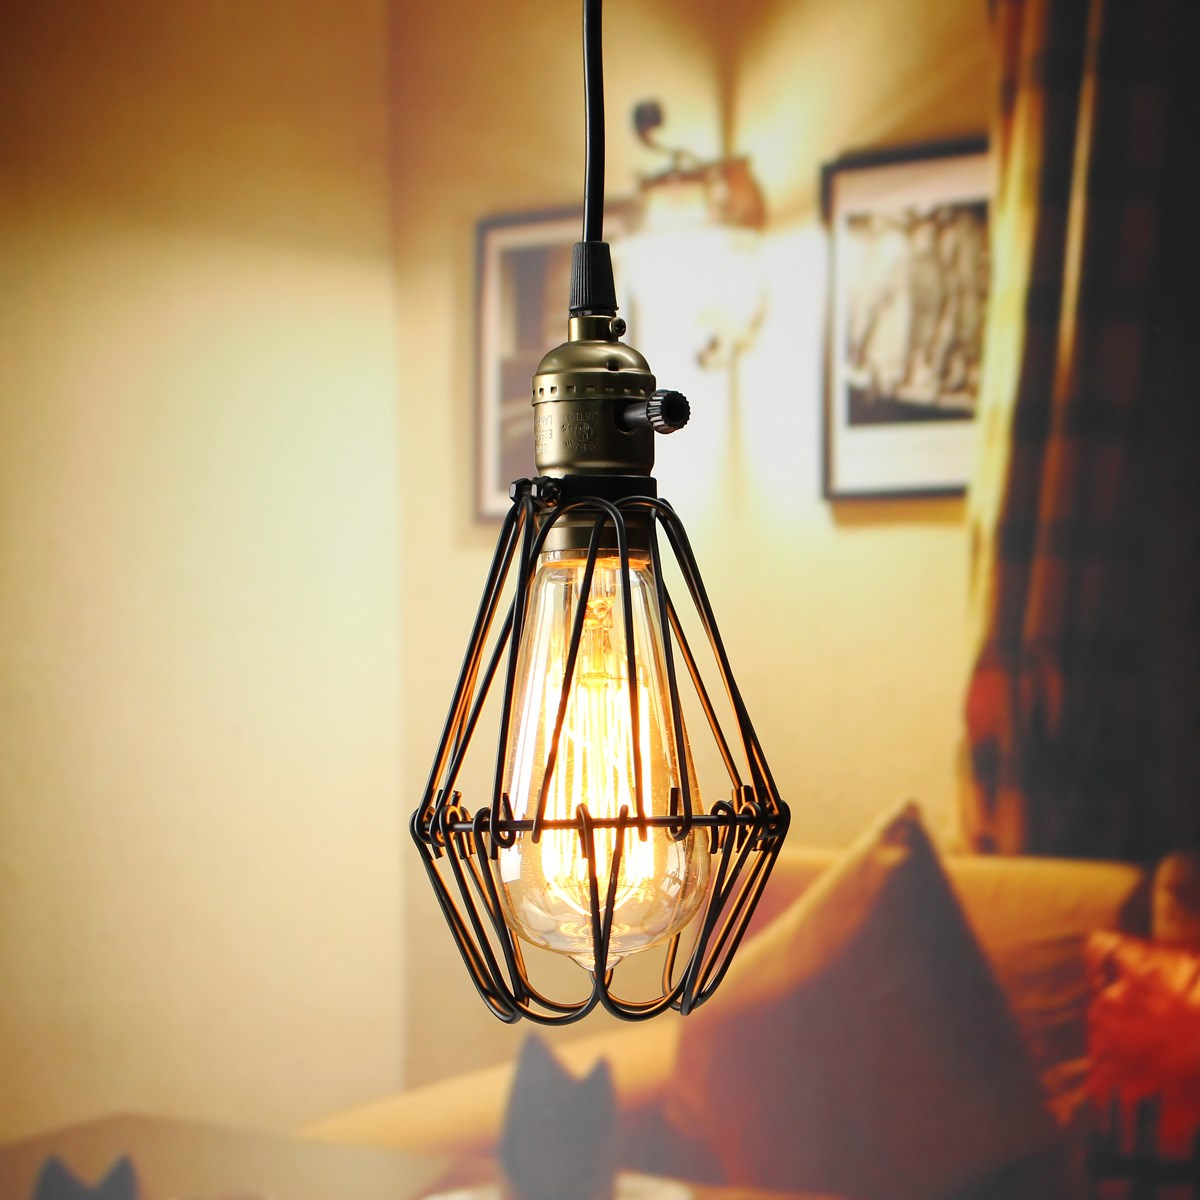 Wall Hanging Lights: Hot Sale E27 40W ST64 Loft Metal Retro Industrial Pendant